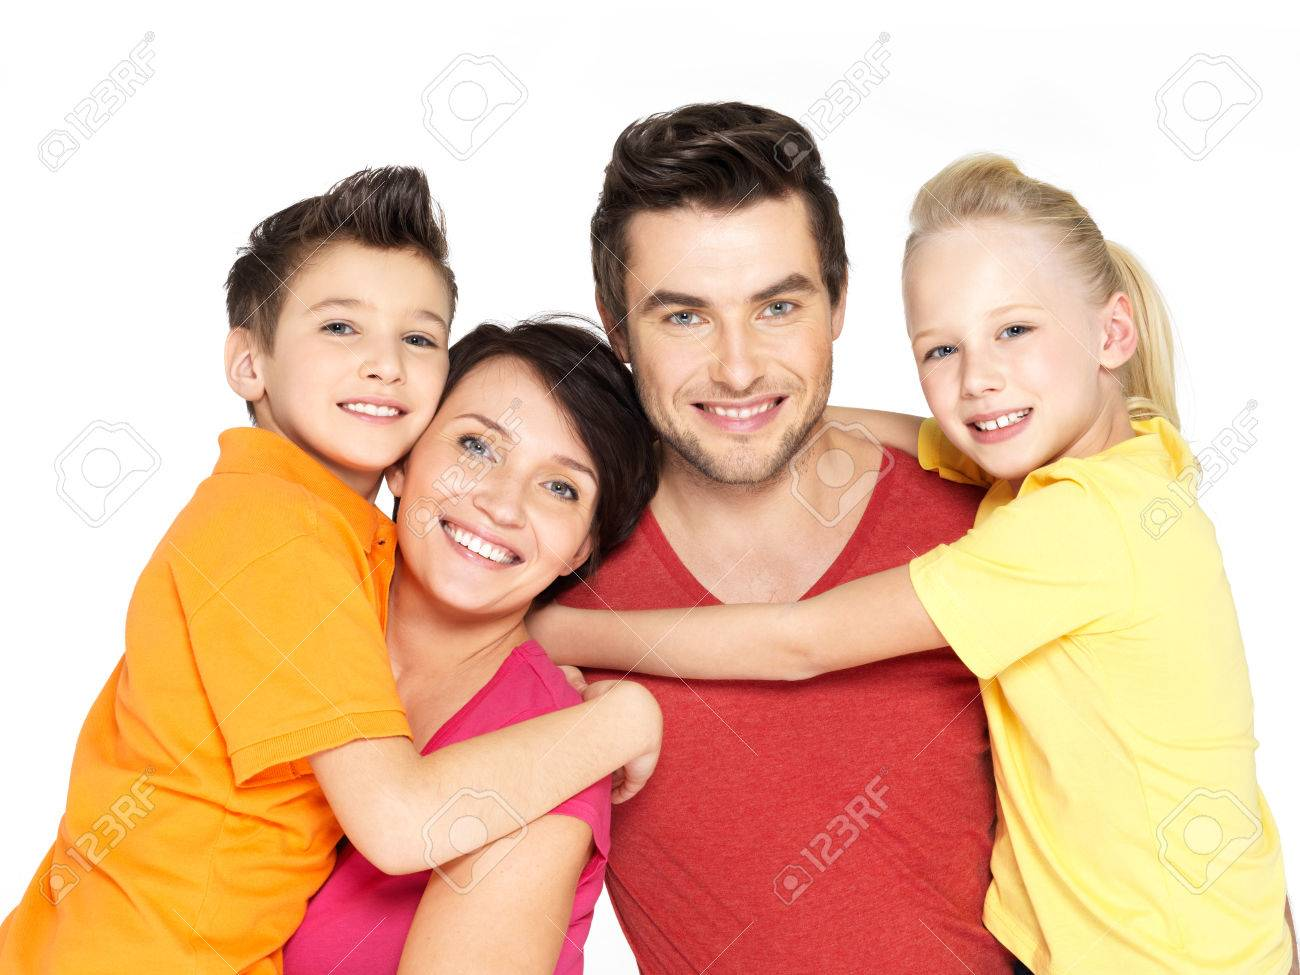 Photo of the happy young family with two children isolated on white background Stock Photo - 23190312